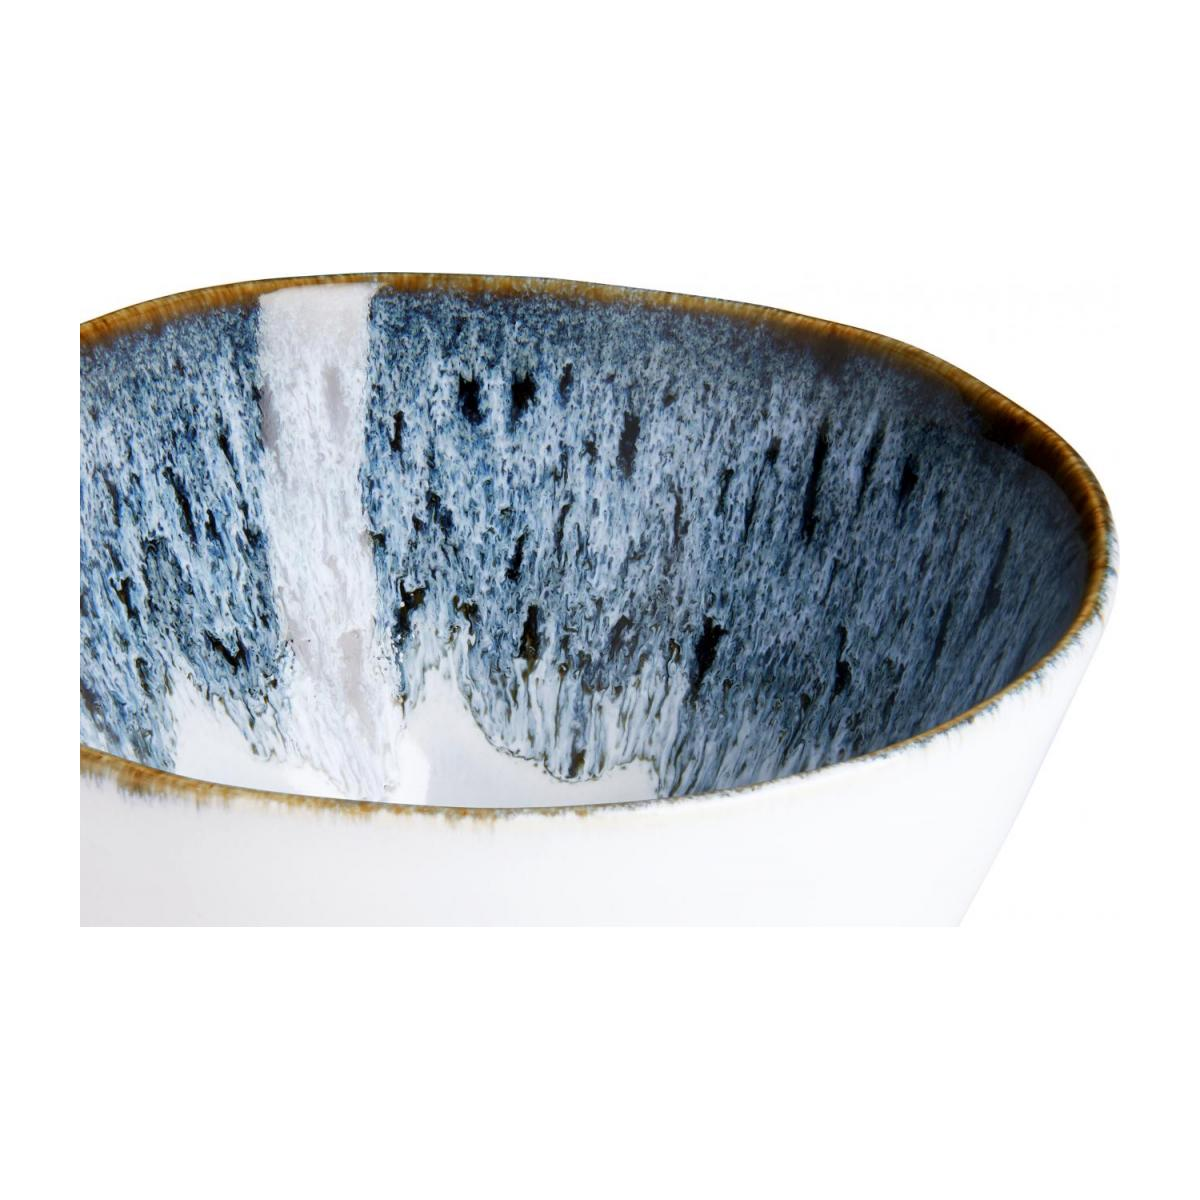 Grand Bowl made of sandstone 15cm, white and black n°3